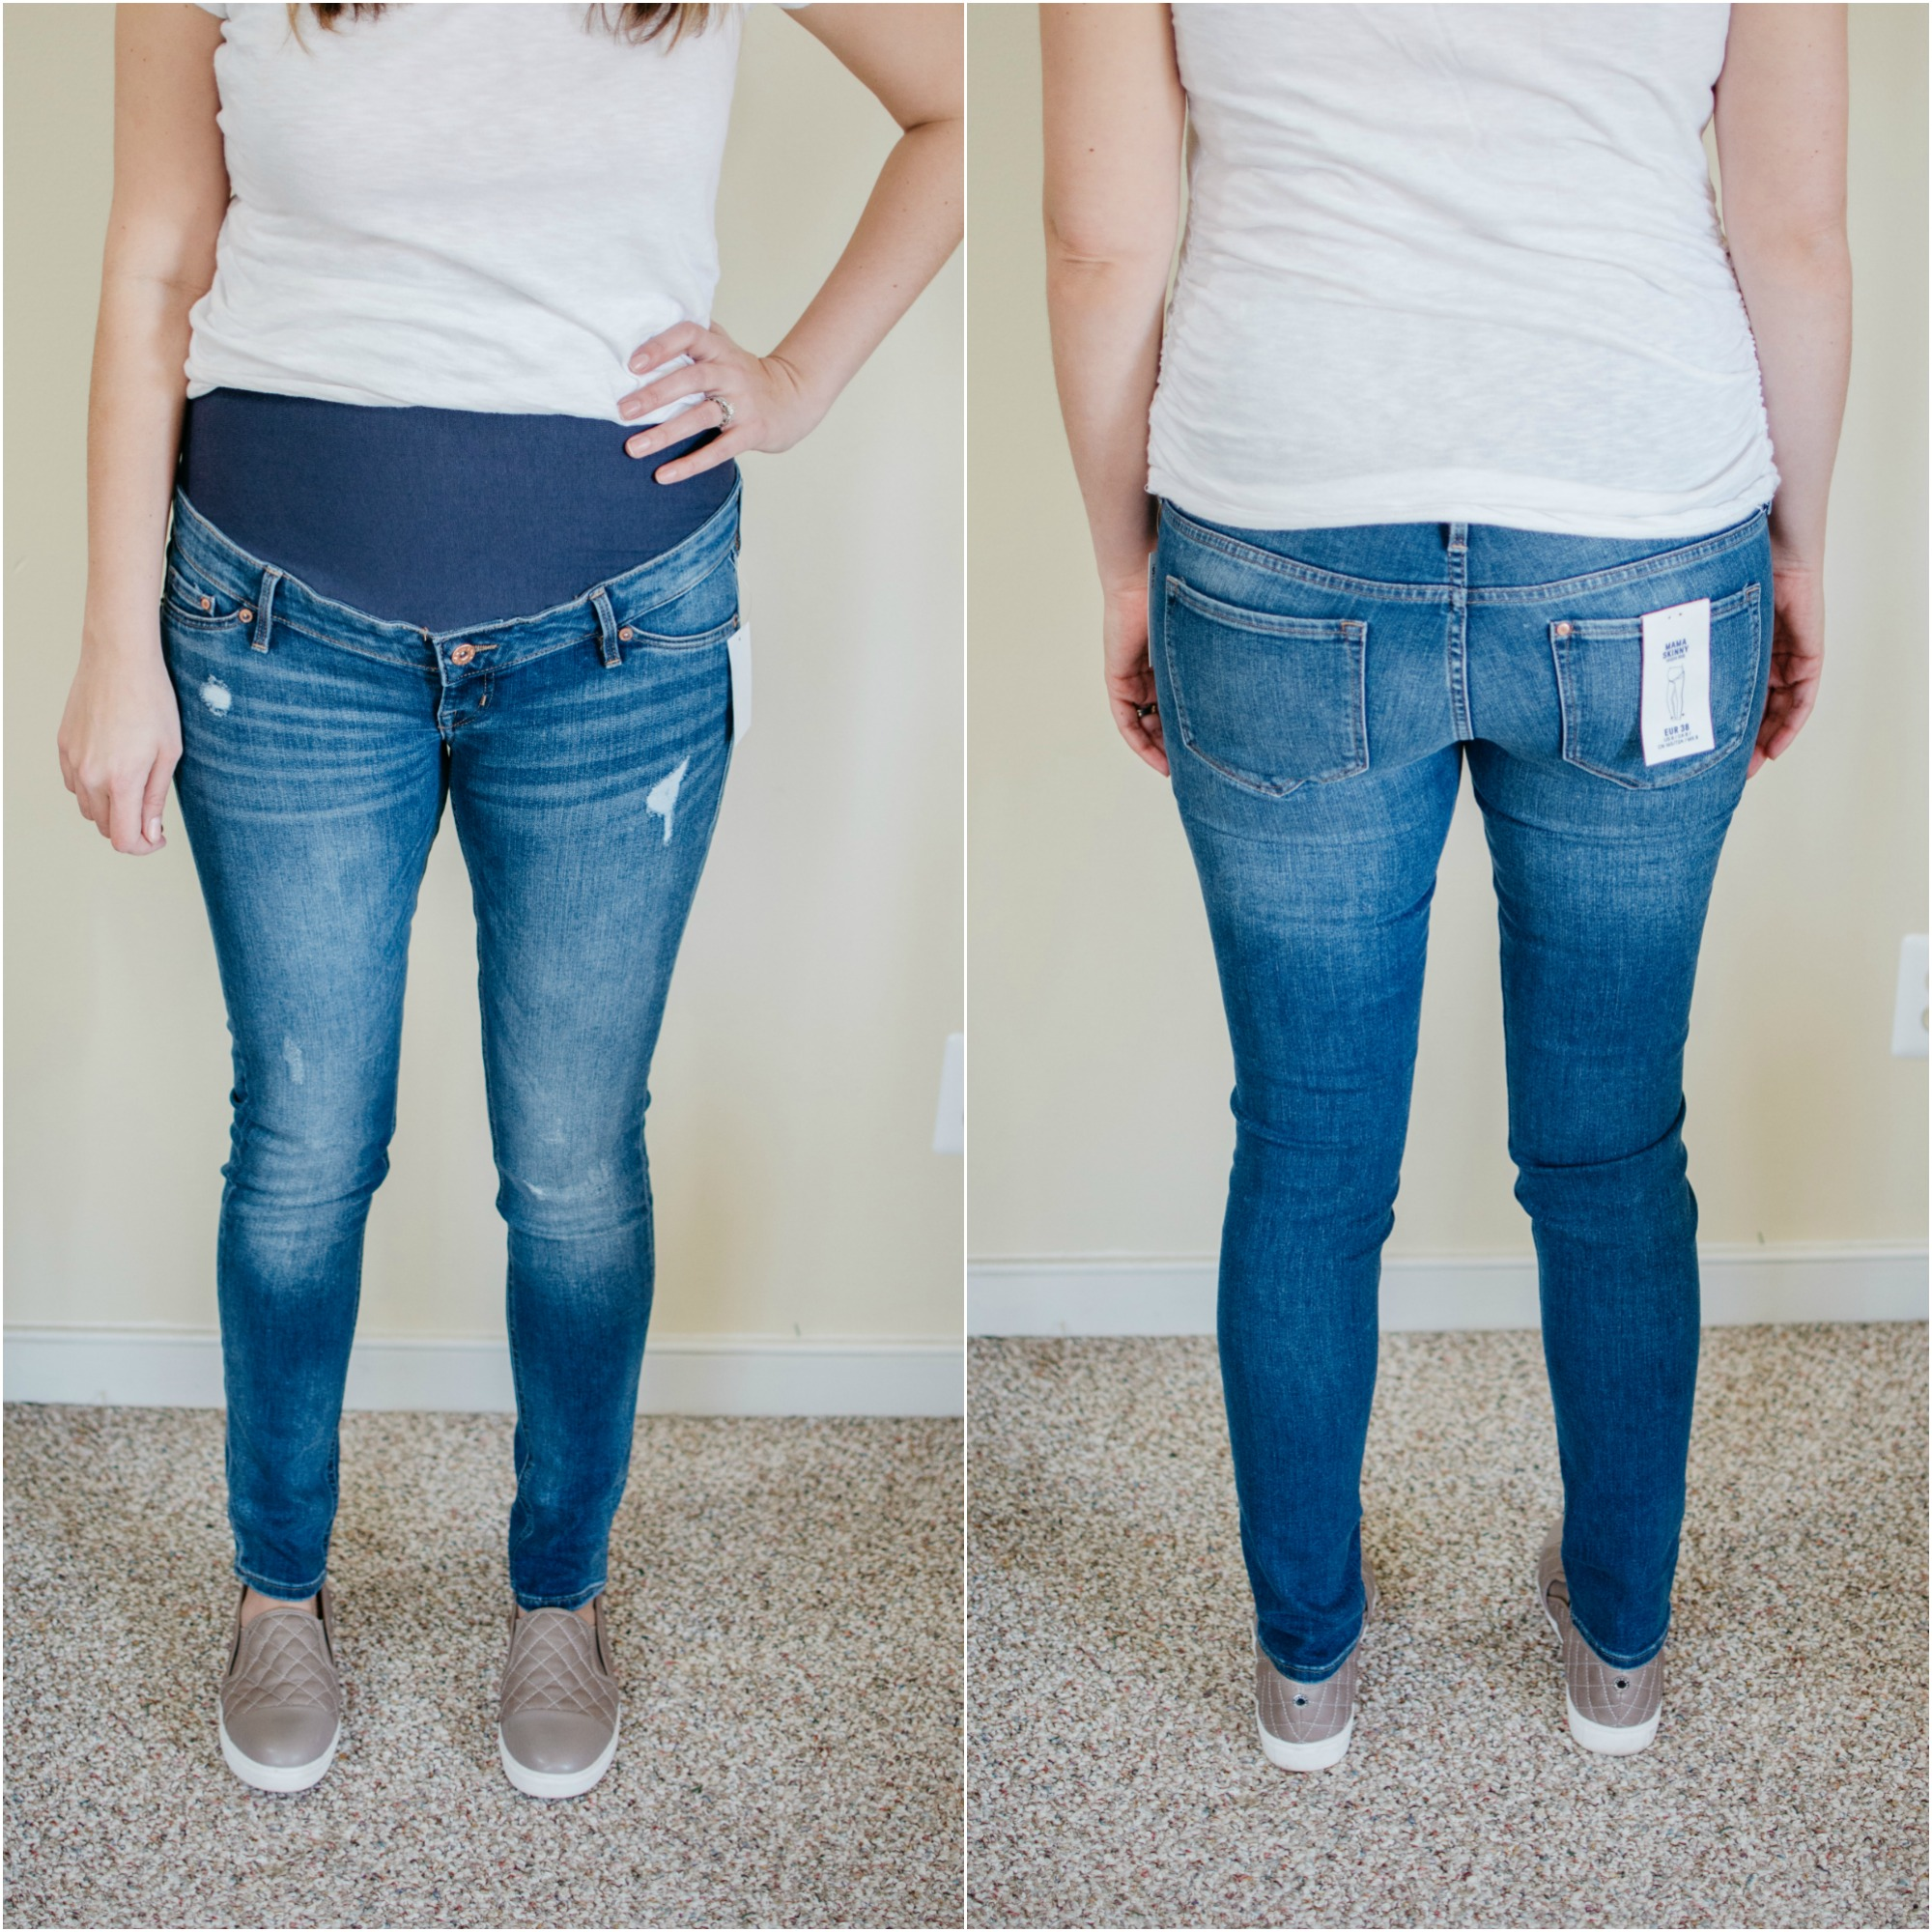 4c63c23e25907 H&M mama skinny jeans maternity skinny jeans review | See reviews of over  15 maternity jeans